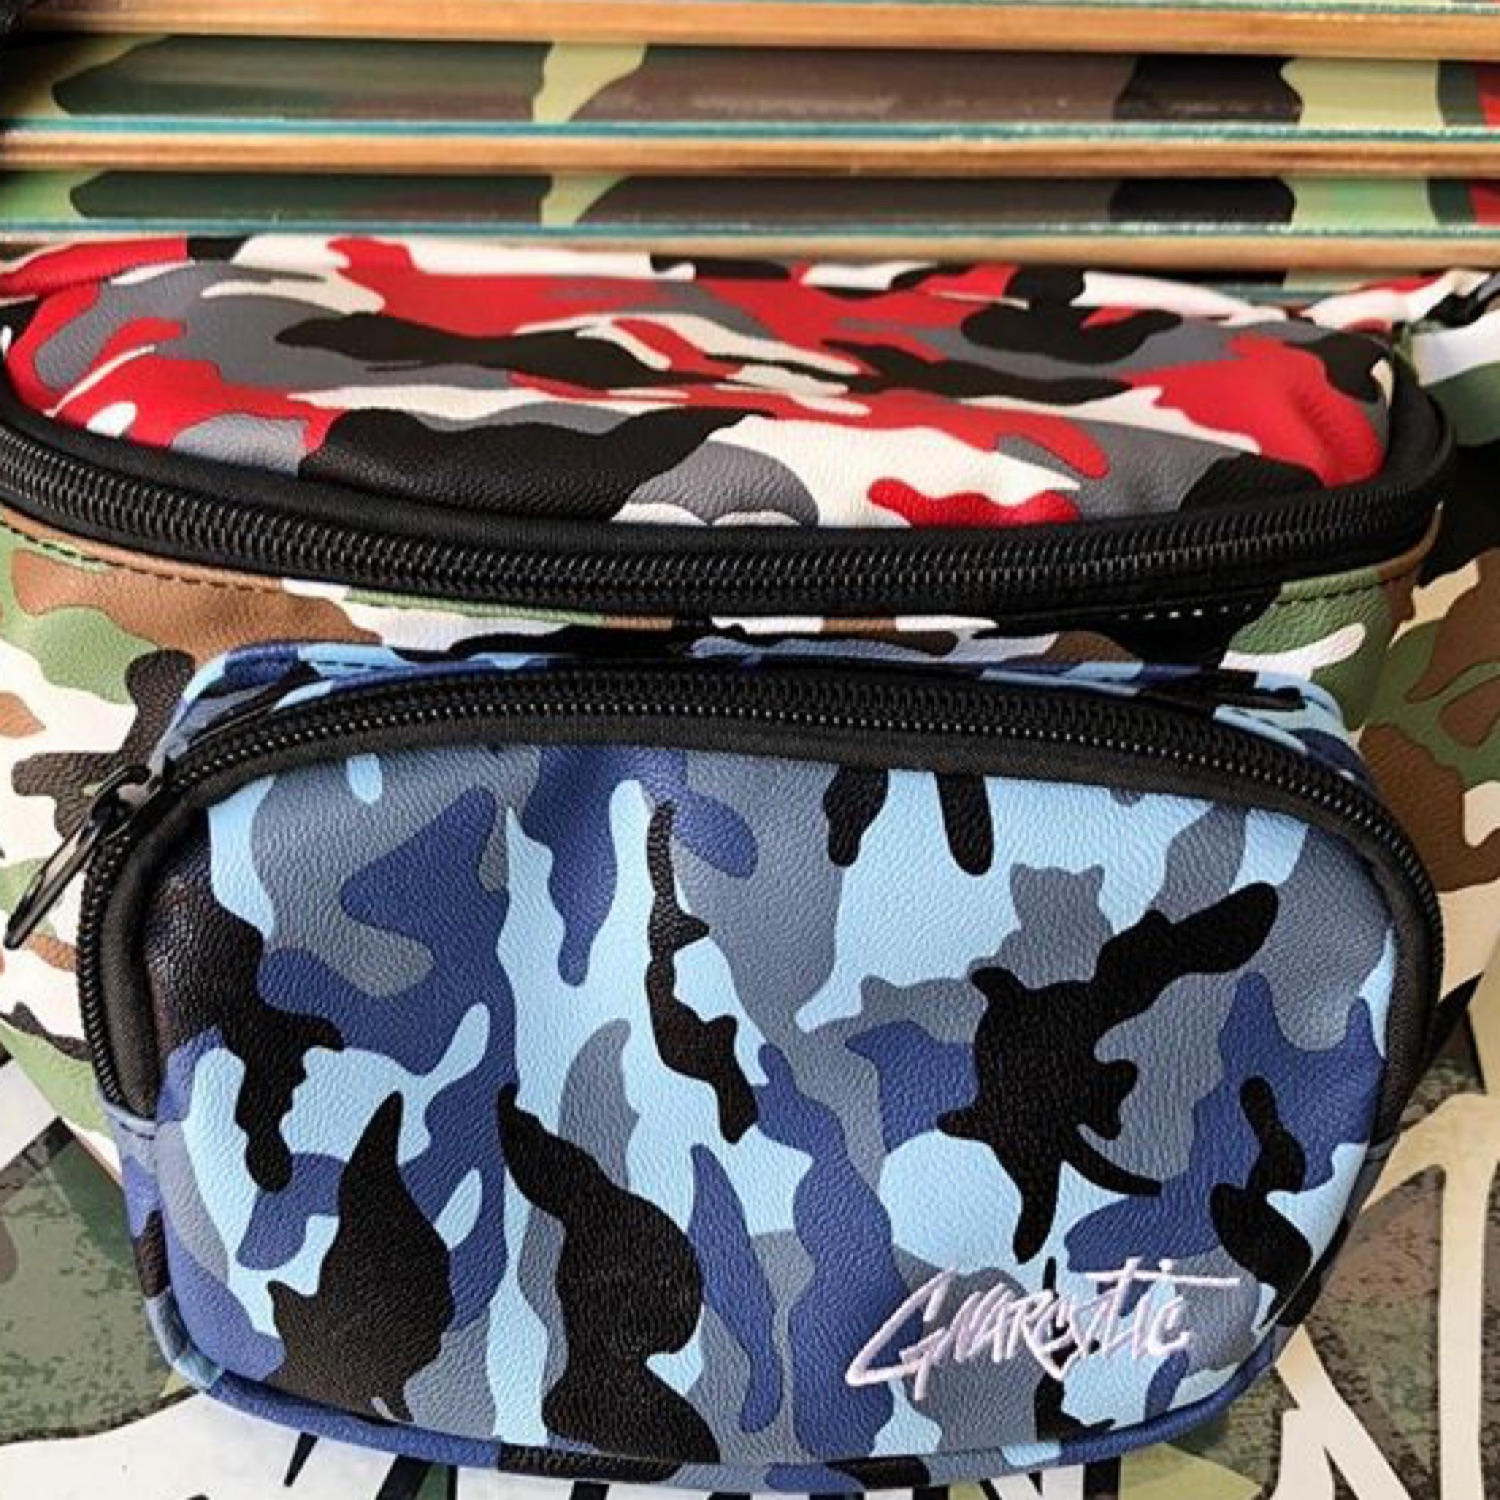 Gnarcotic Tri-Camo Waistbag Leather